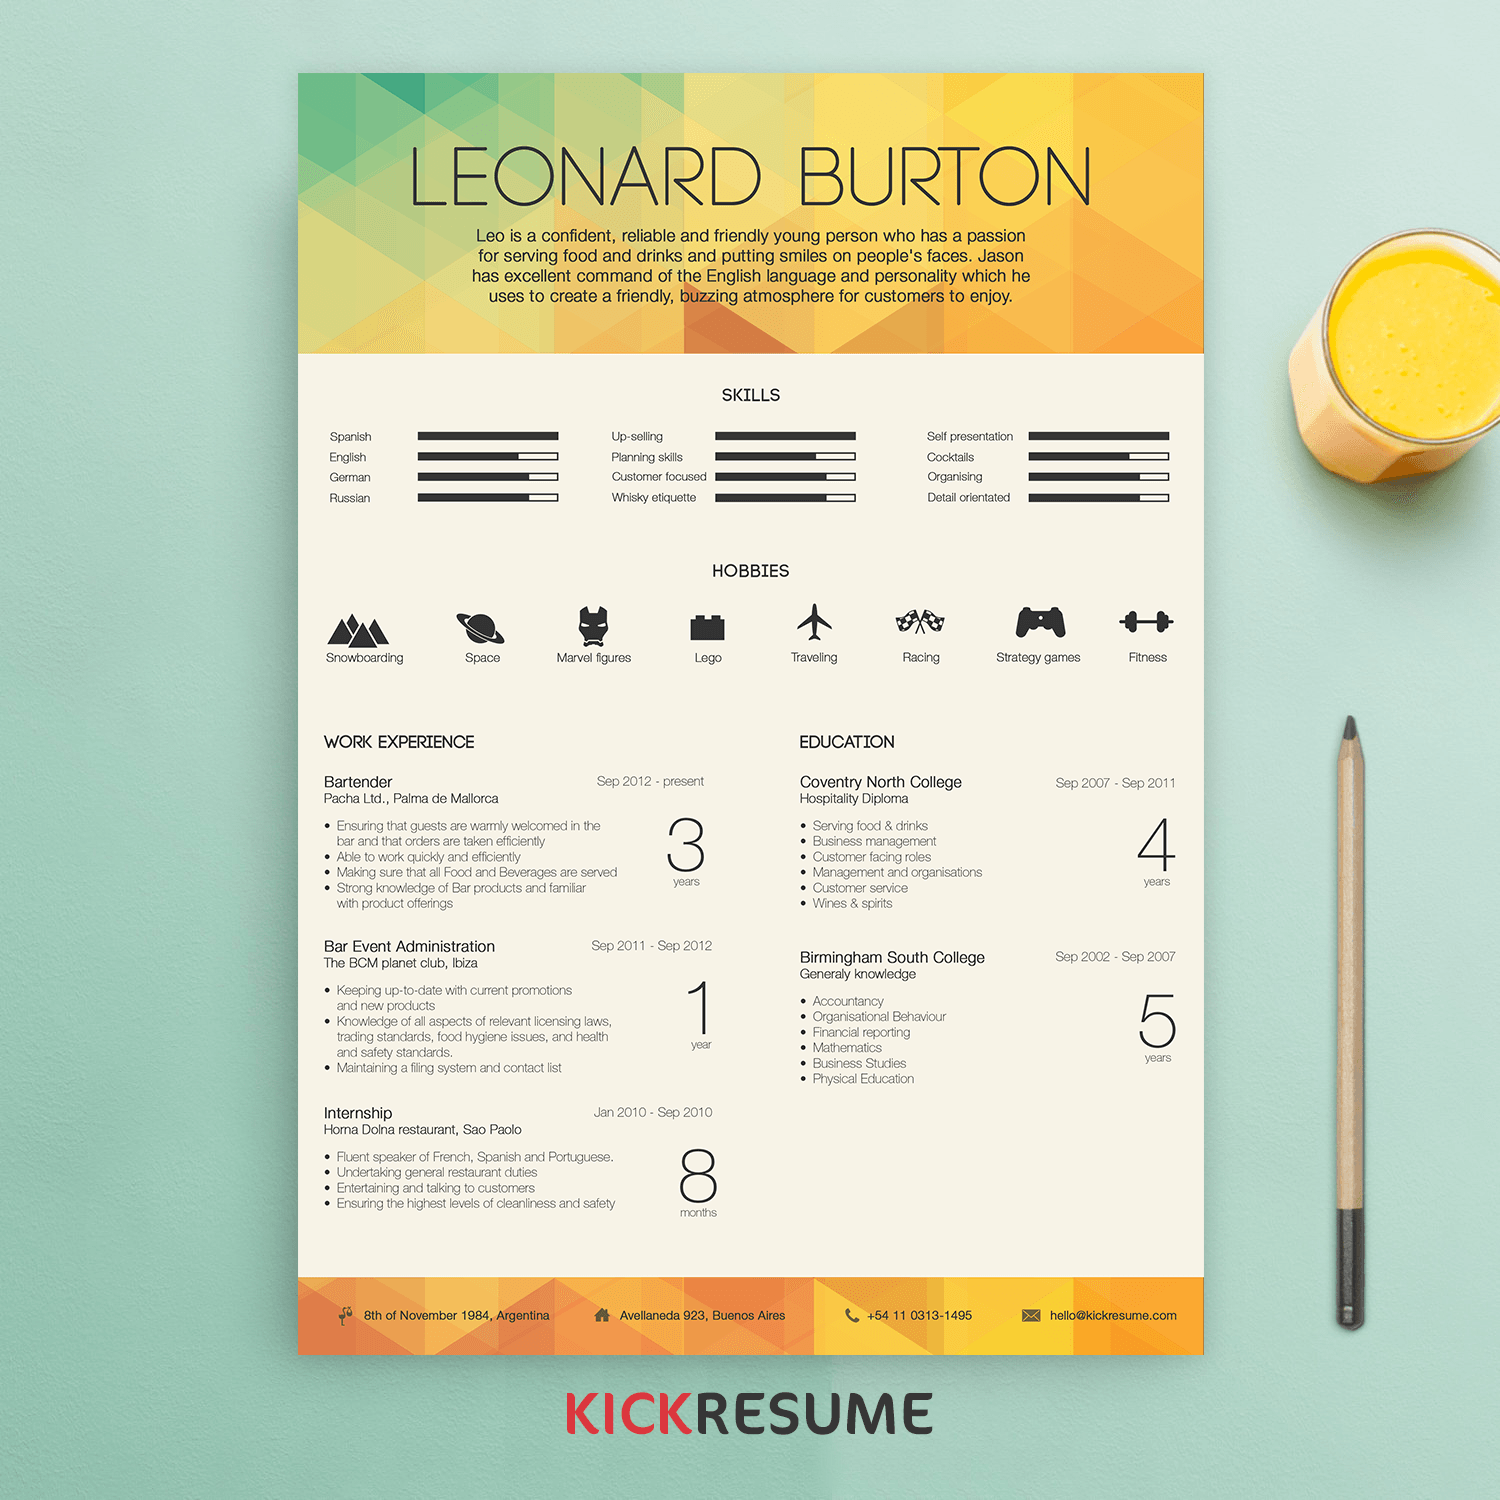 Custom Resume By Kickresume (get Same Here)  Resume Design Inspiration